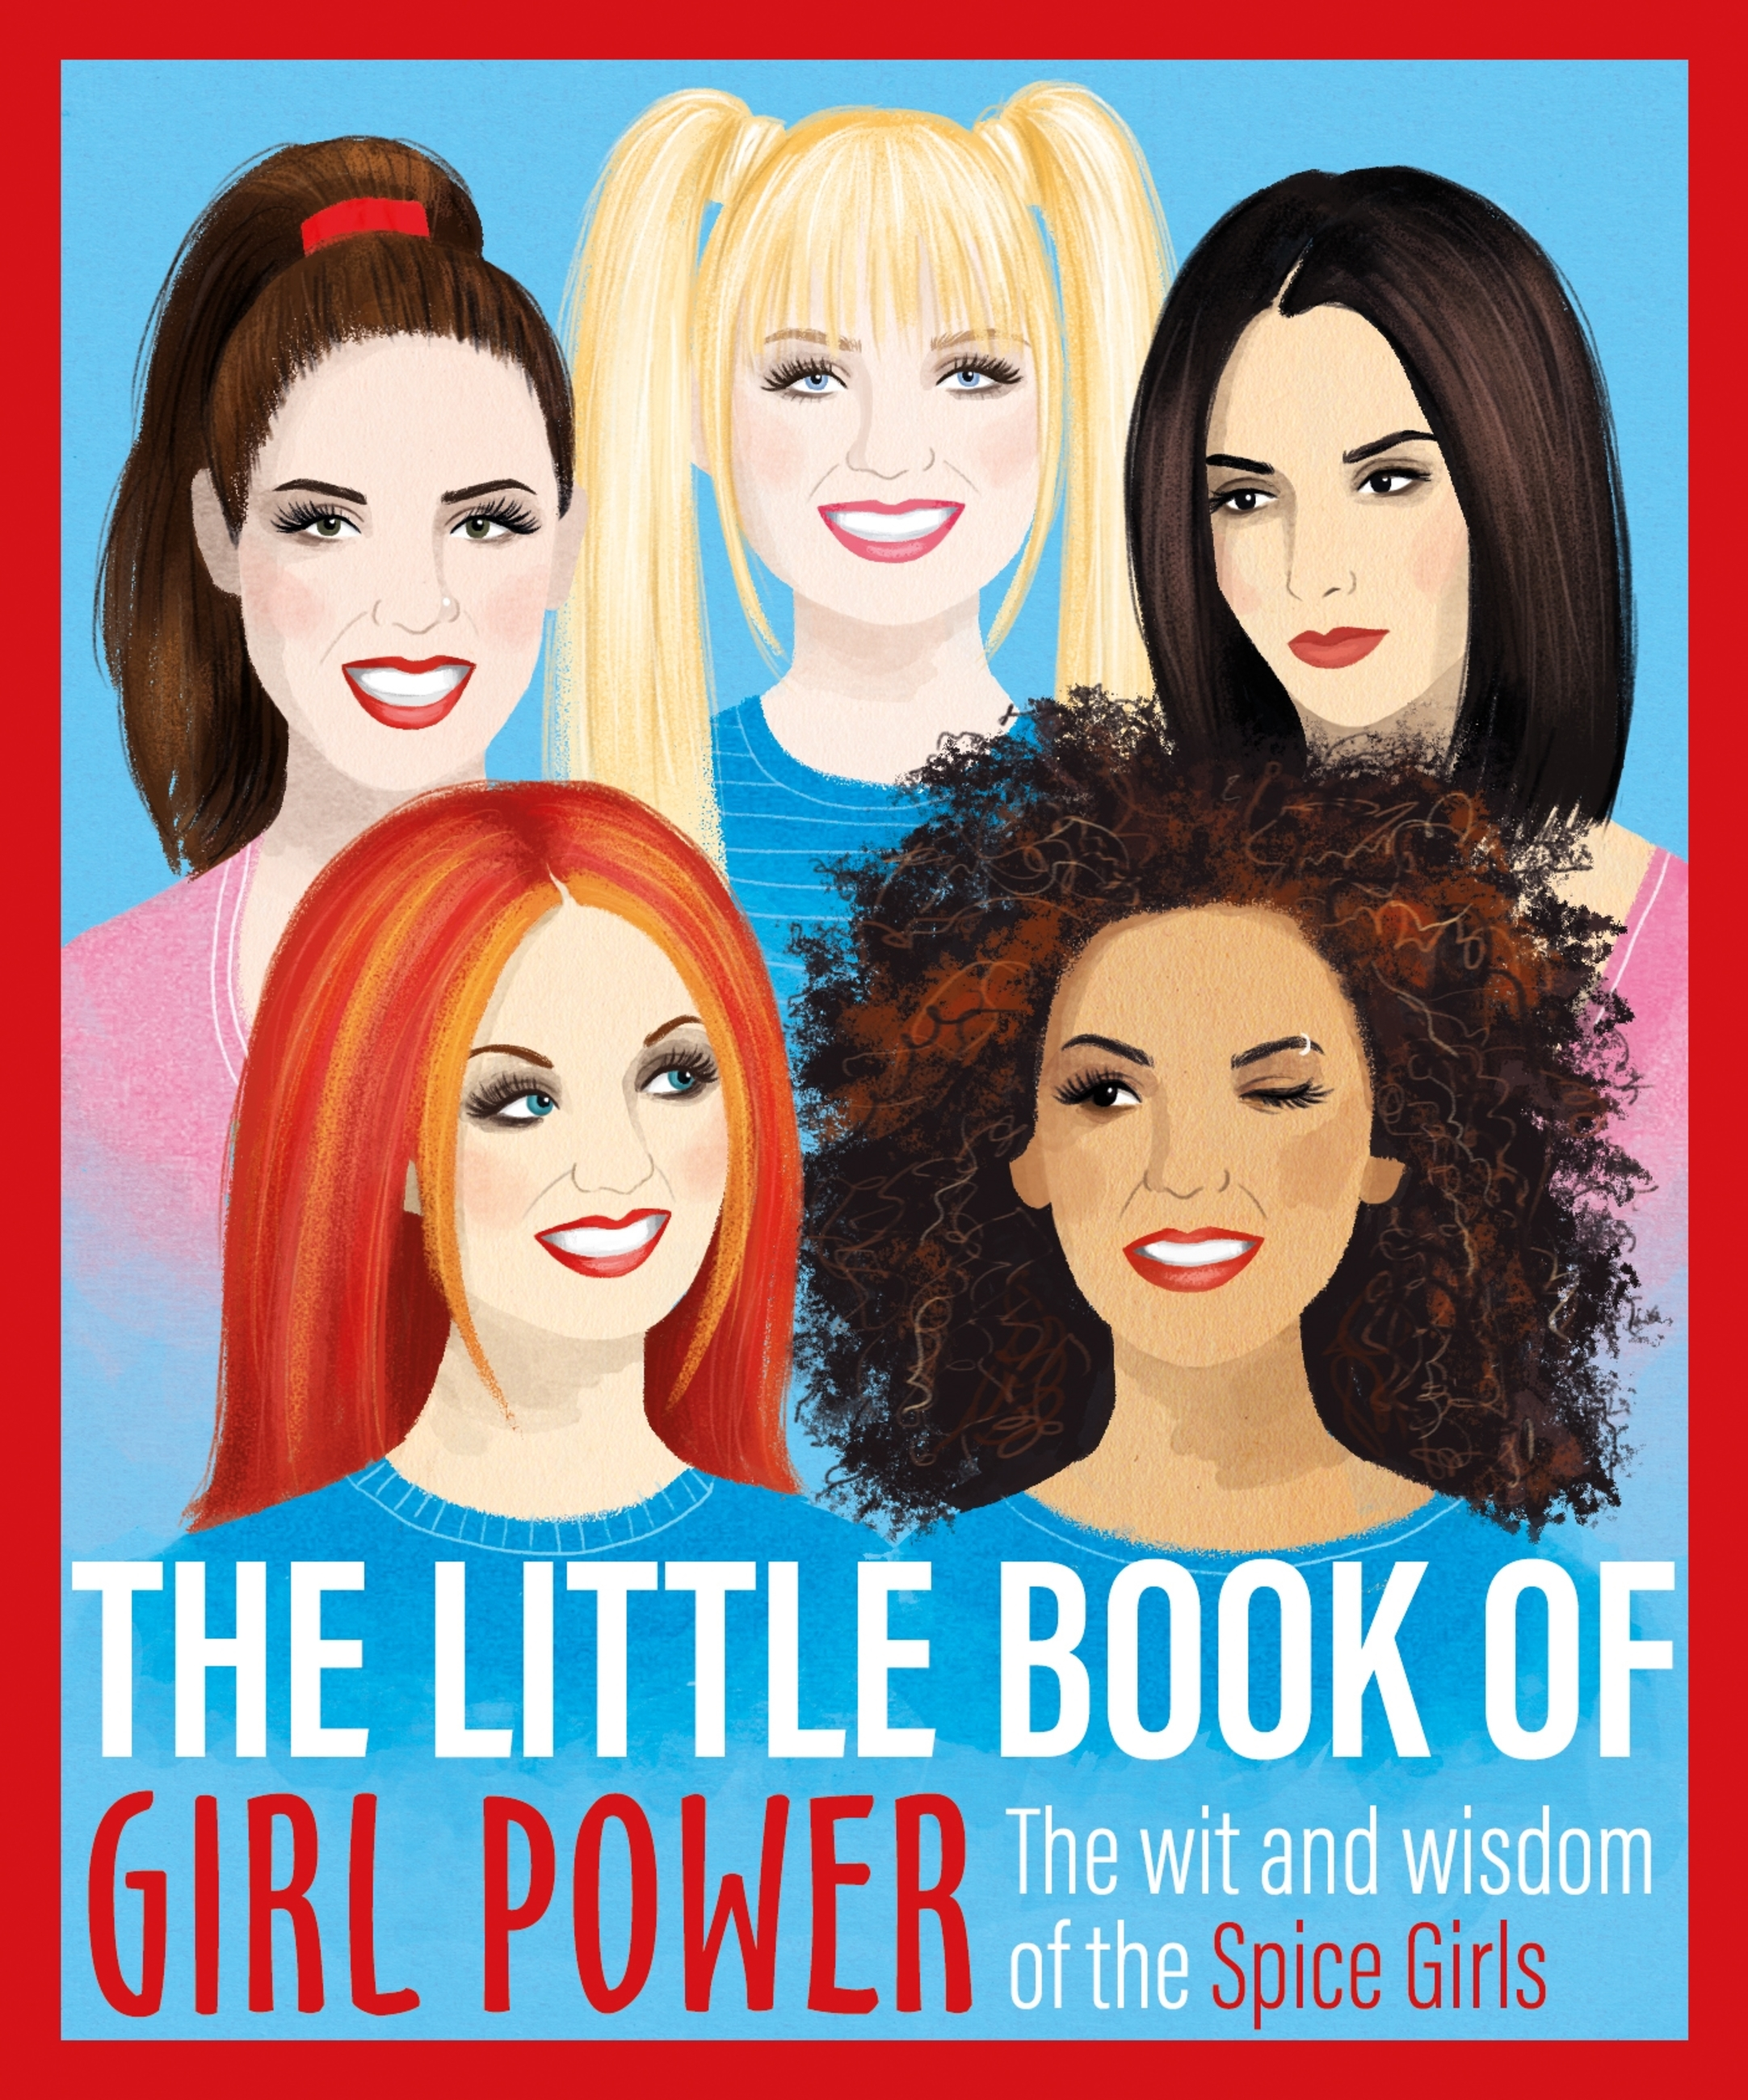 The Little Book of Girl Power